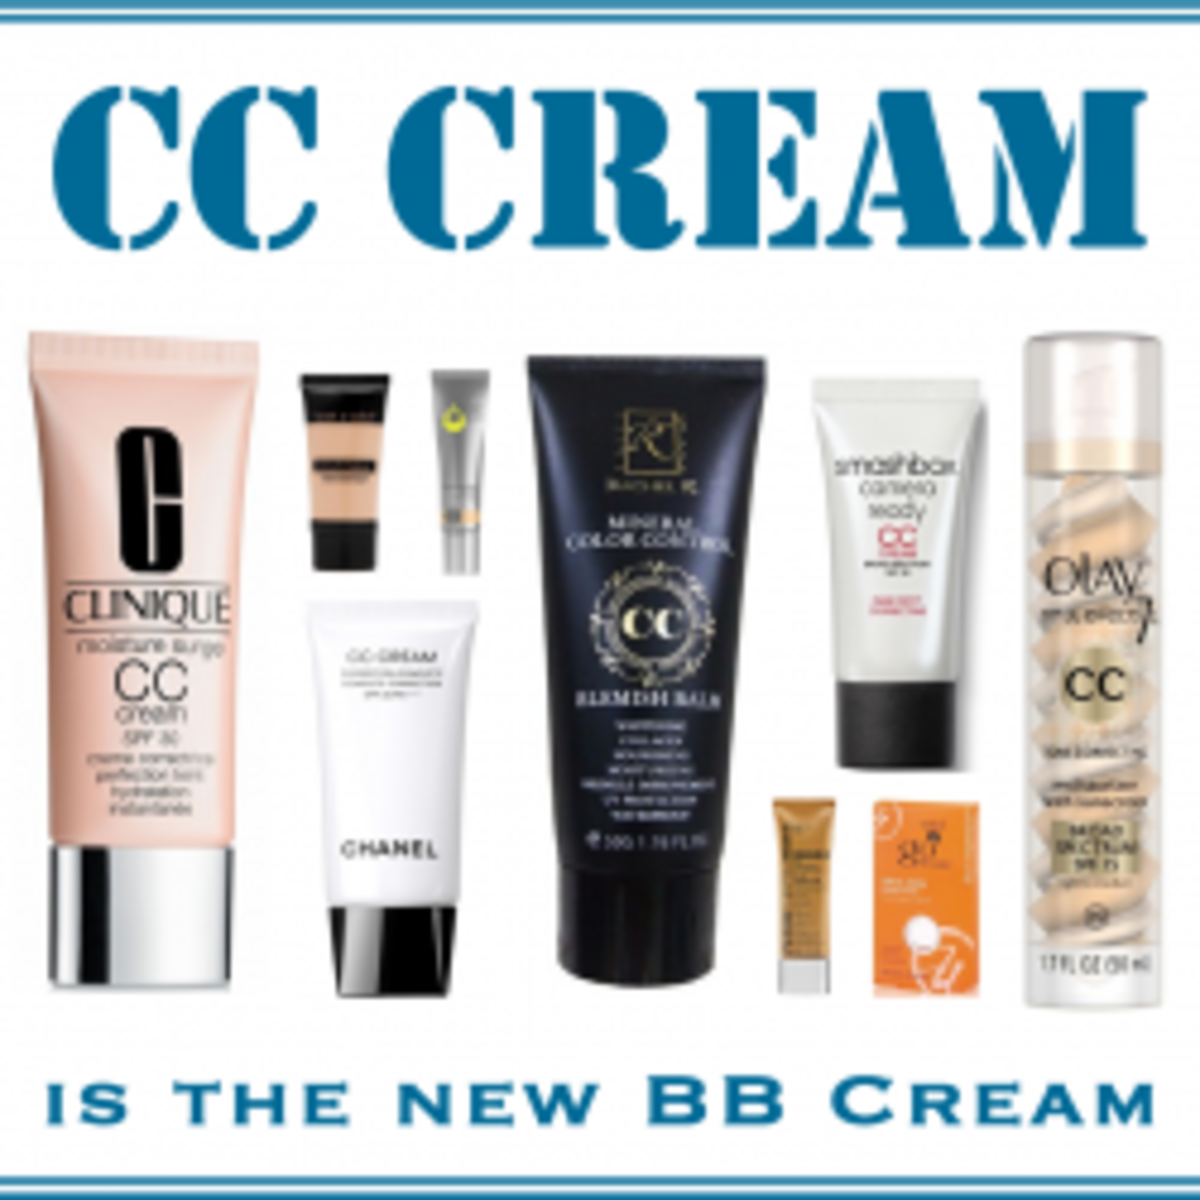 CC Cream is the New BB Cream